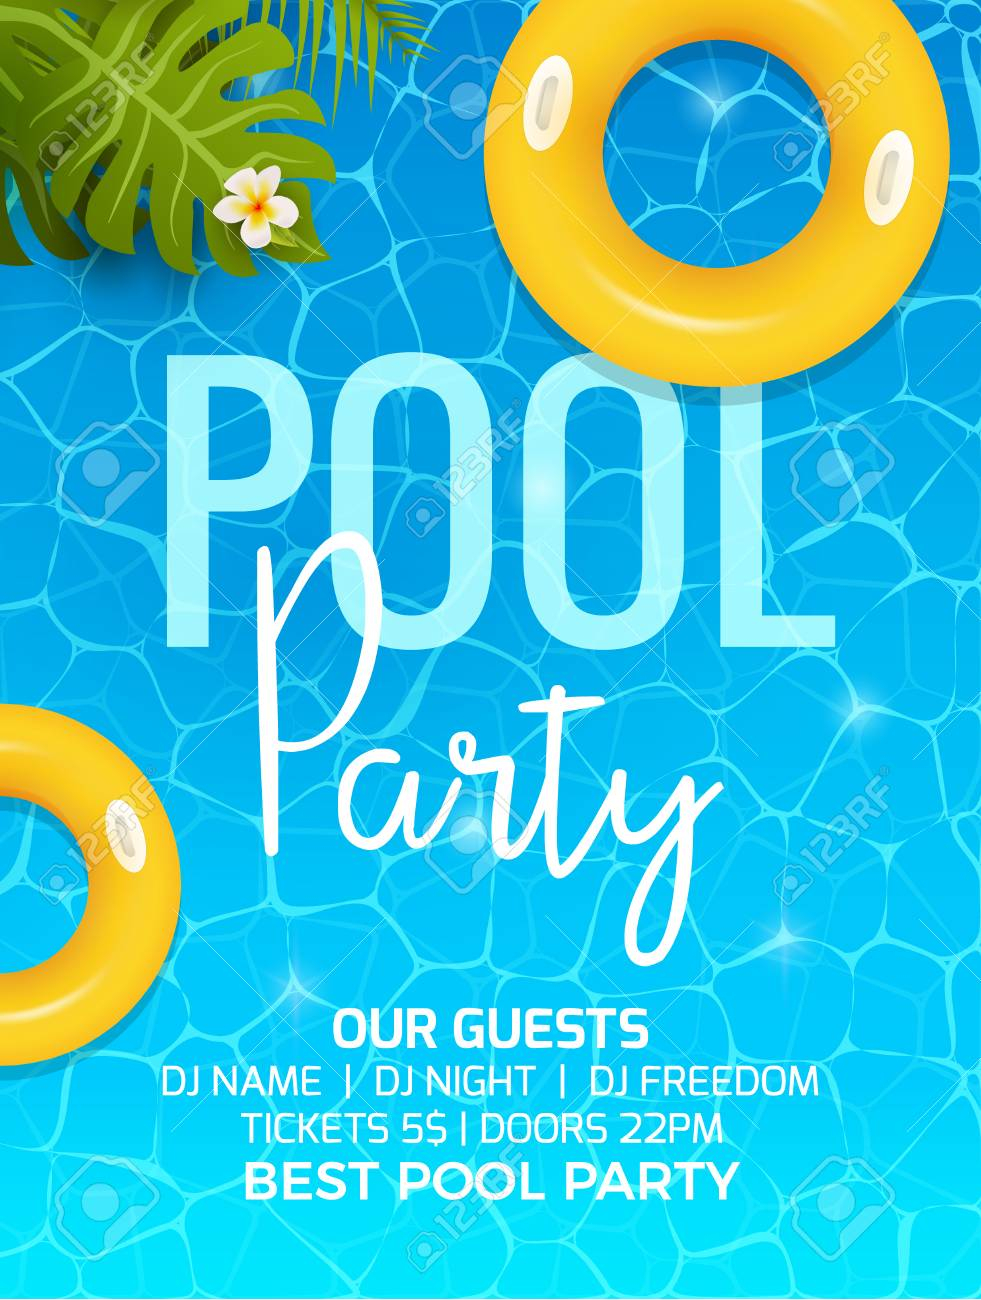 Pool Summer Party Invitation Template Invitation Pool Party inside dimensions 981 X 1300